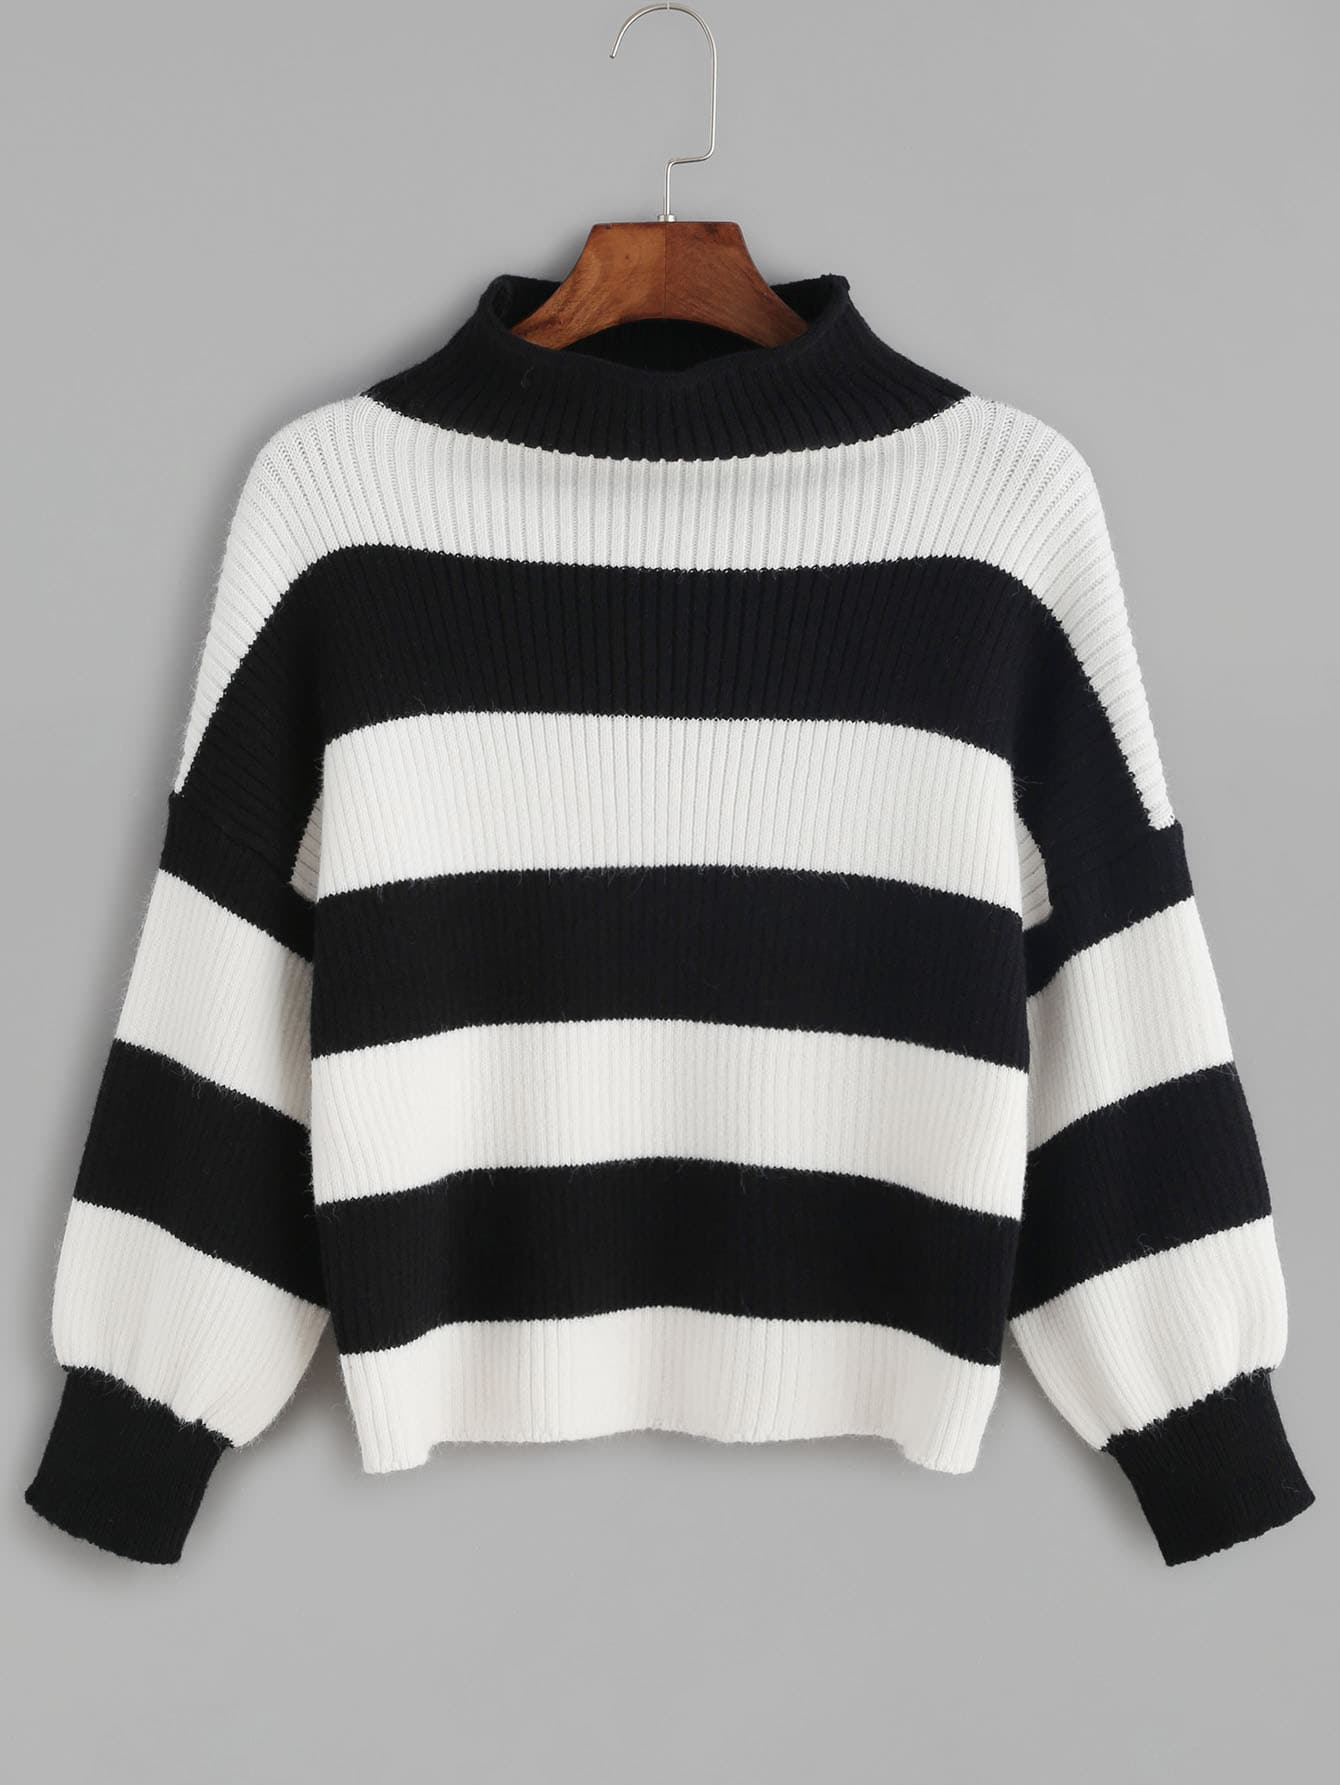 Black And White Striped Ribbed Knit Crop Sweater sweater161025457